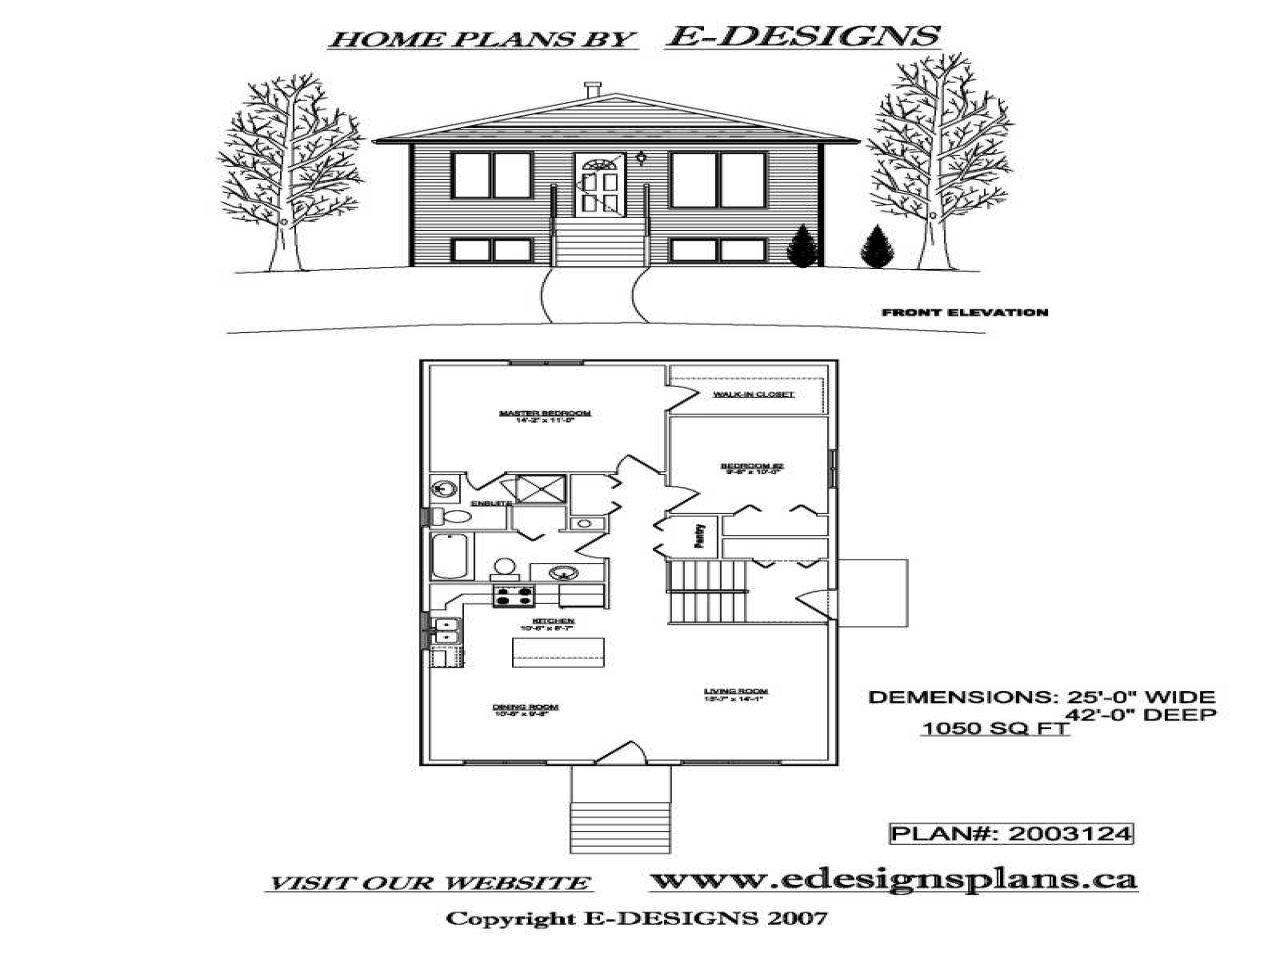 Split level home bi level home plans with garage bi level for Bi level home plans with garage